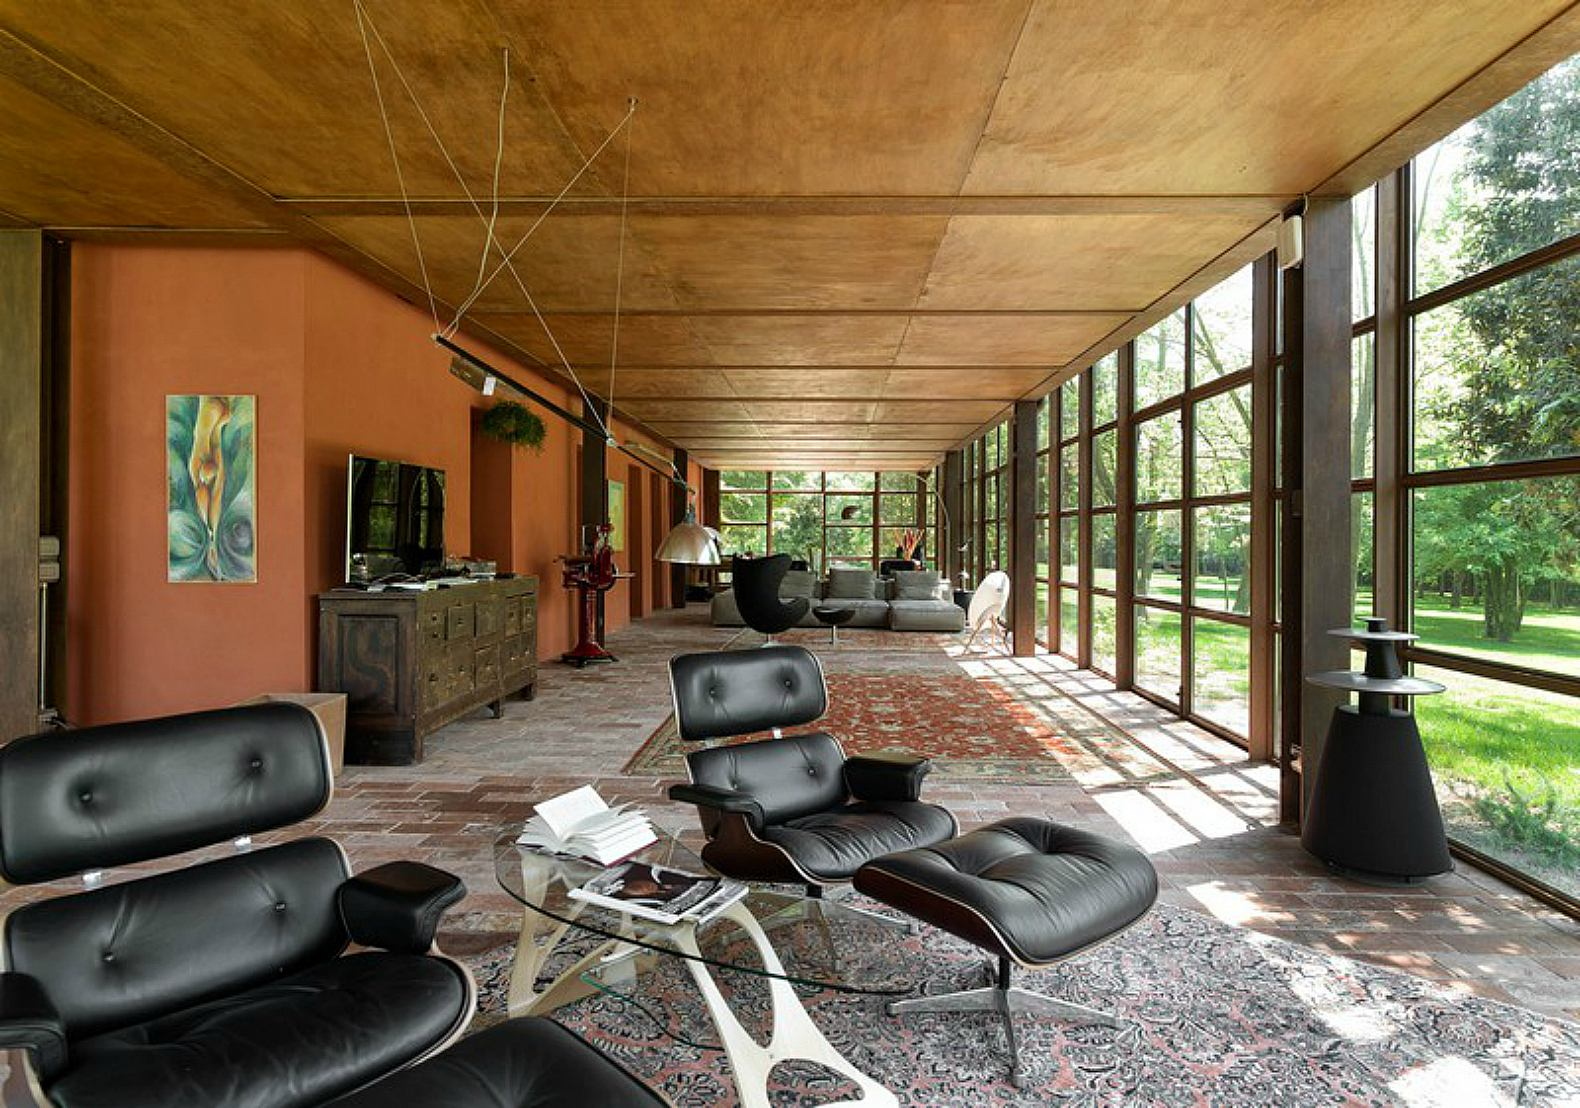 Zanon Architetti Associati, Green Covered Homes, Italian Home Design,  Treviso, Italy. U201c